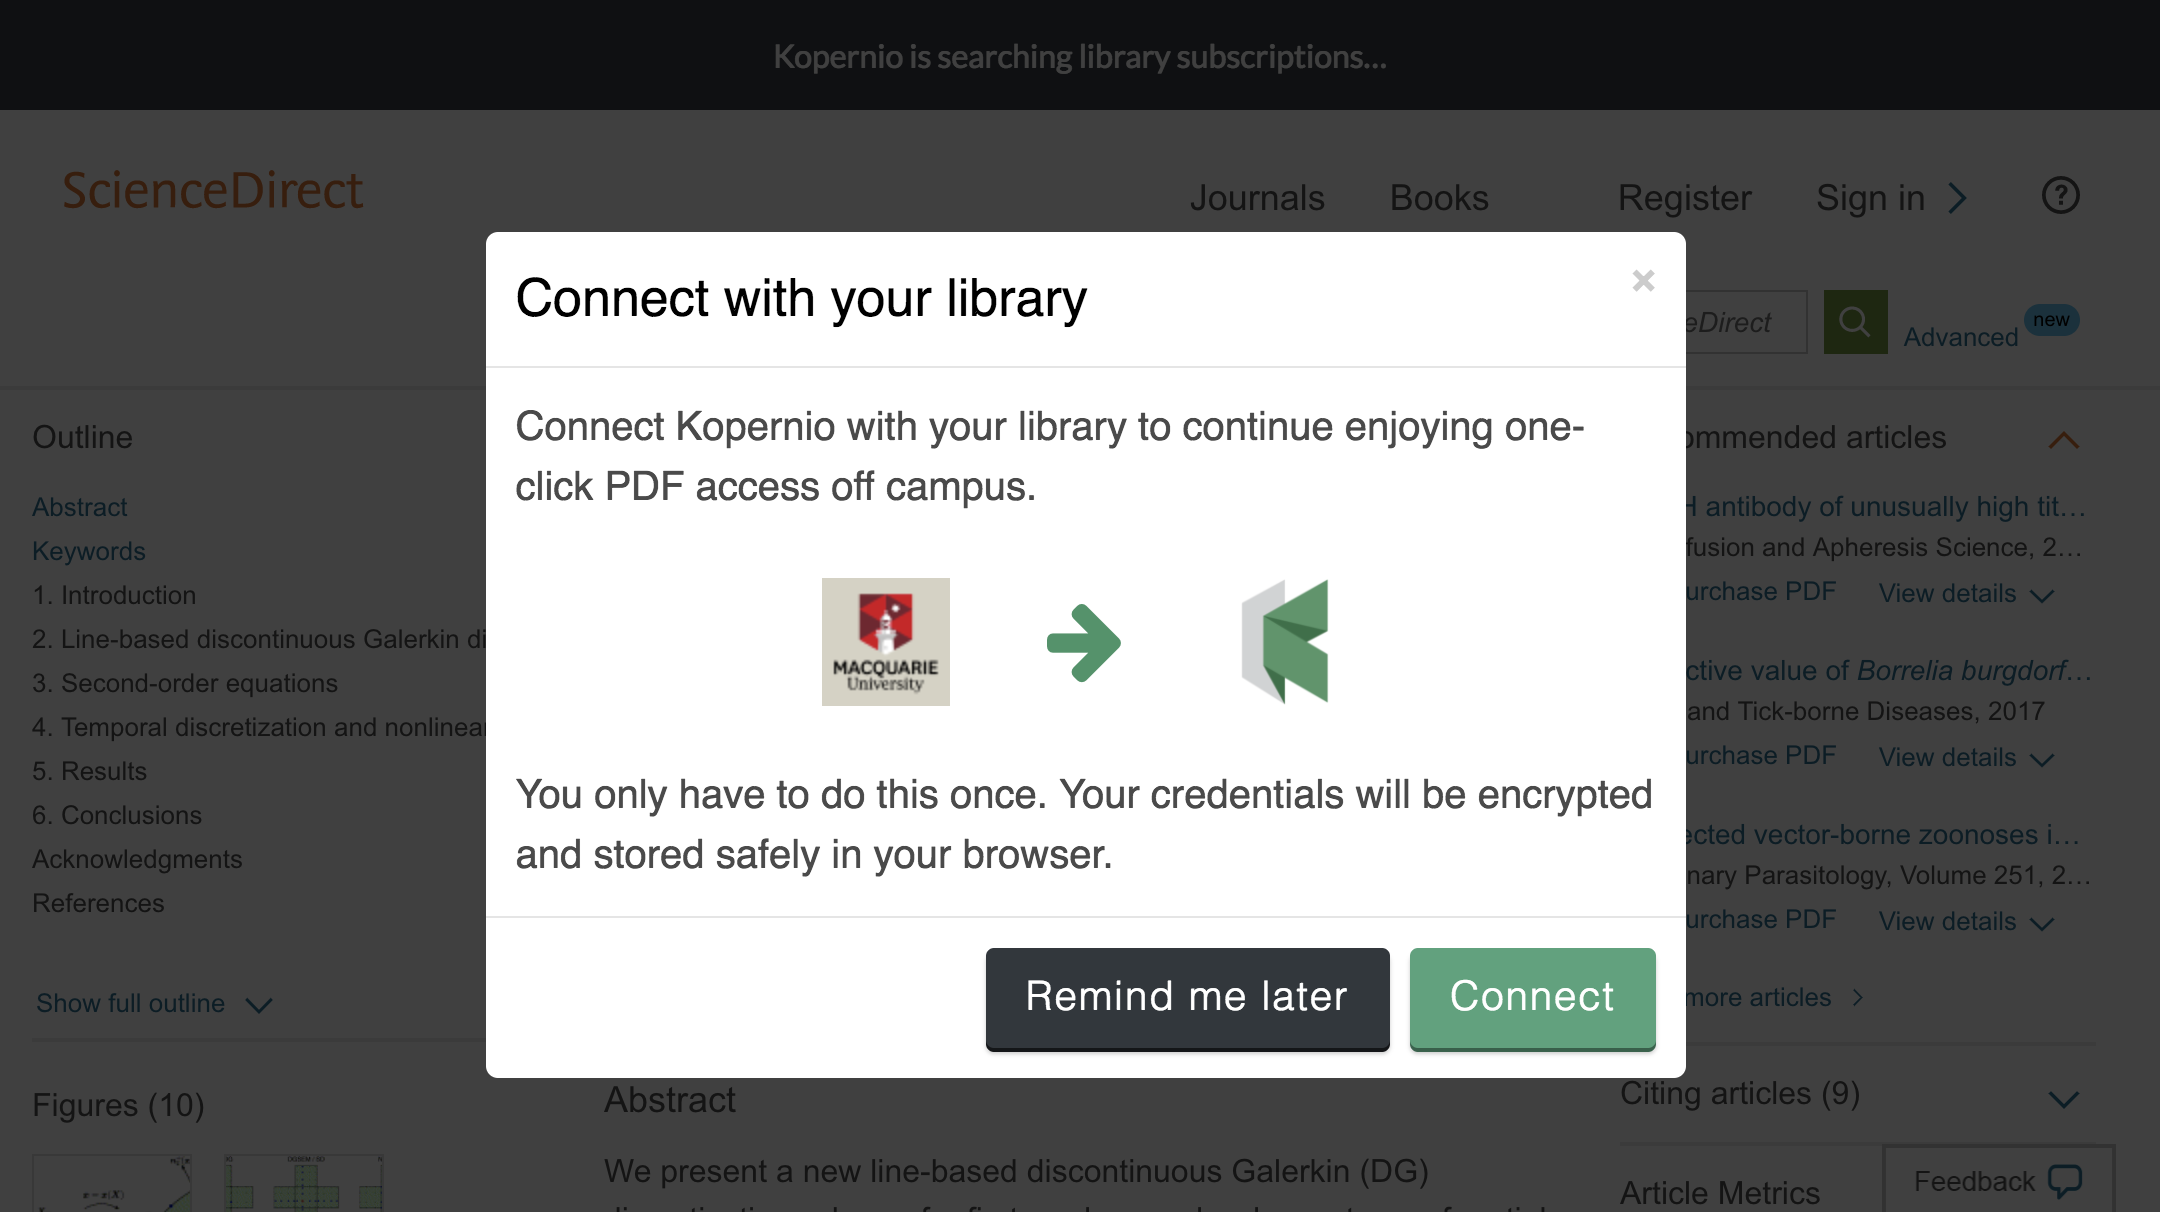 Connect to library prompt for off-campus access to Macquarie University e-resources.